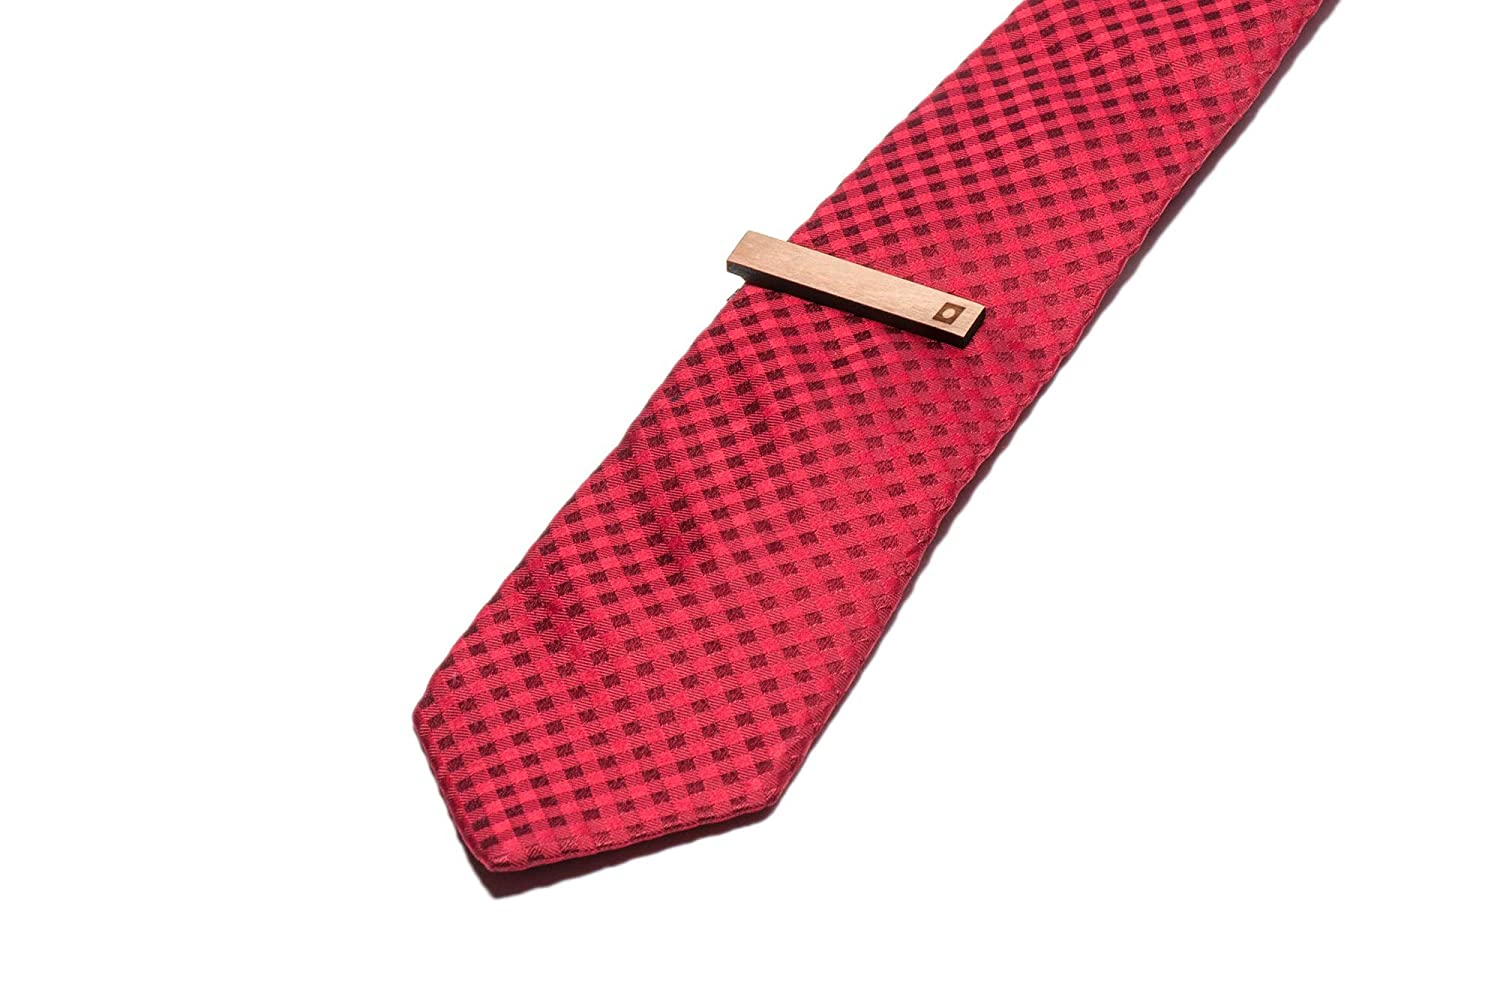 Cherry Wood Tie Bar Engraved in The USA Wooden Accessories Company Wooden Tie Clips with Laser Engraved Spot Design